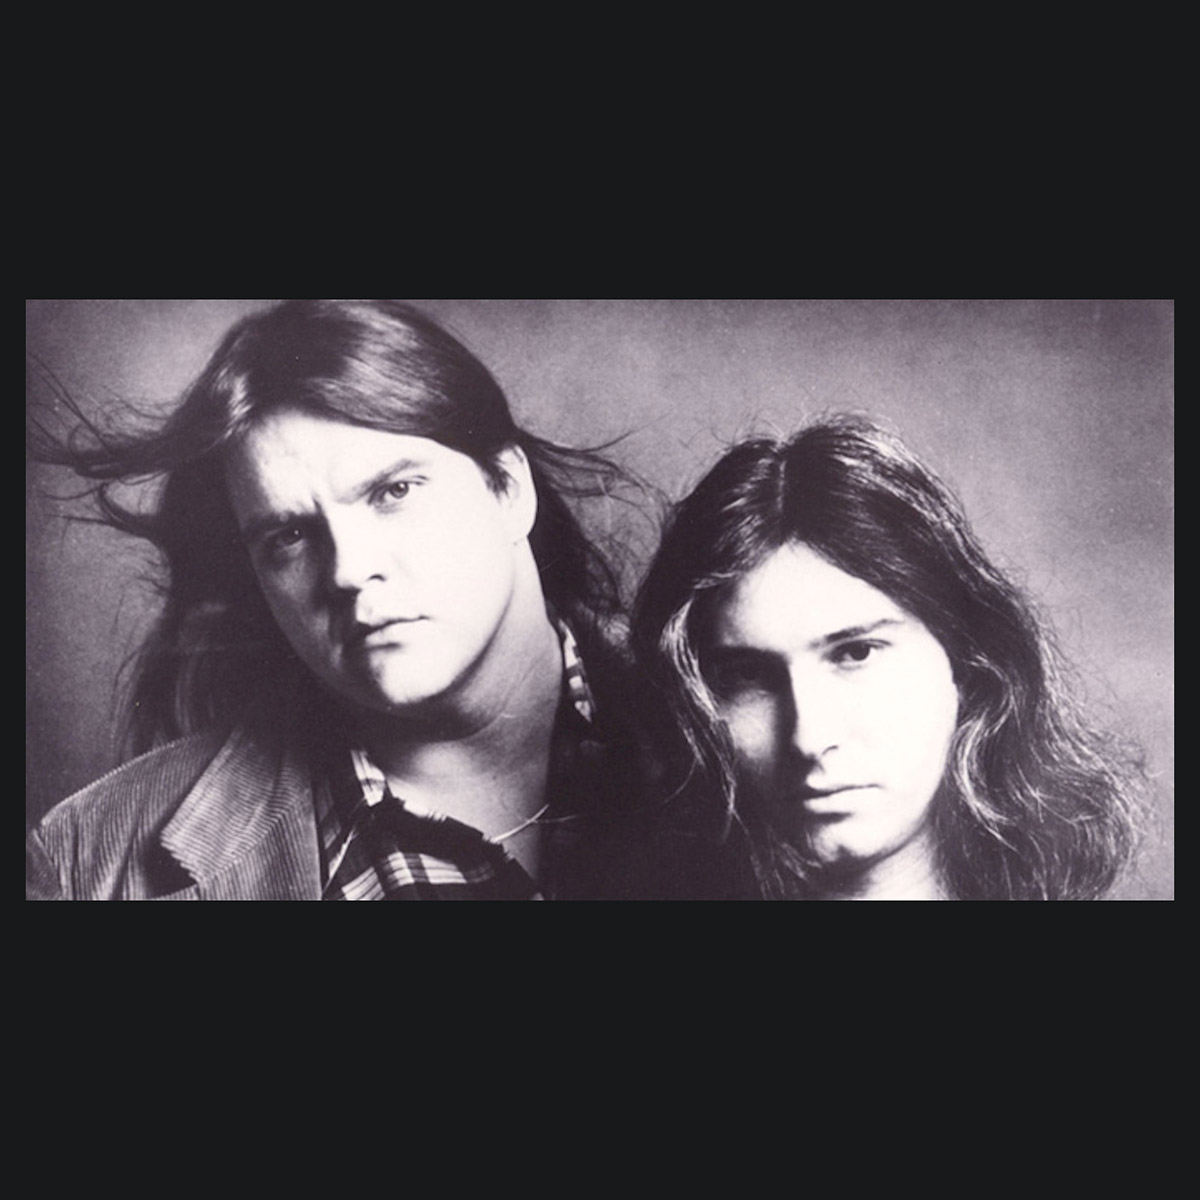 Meat Loaf and Jim Steinman